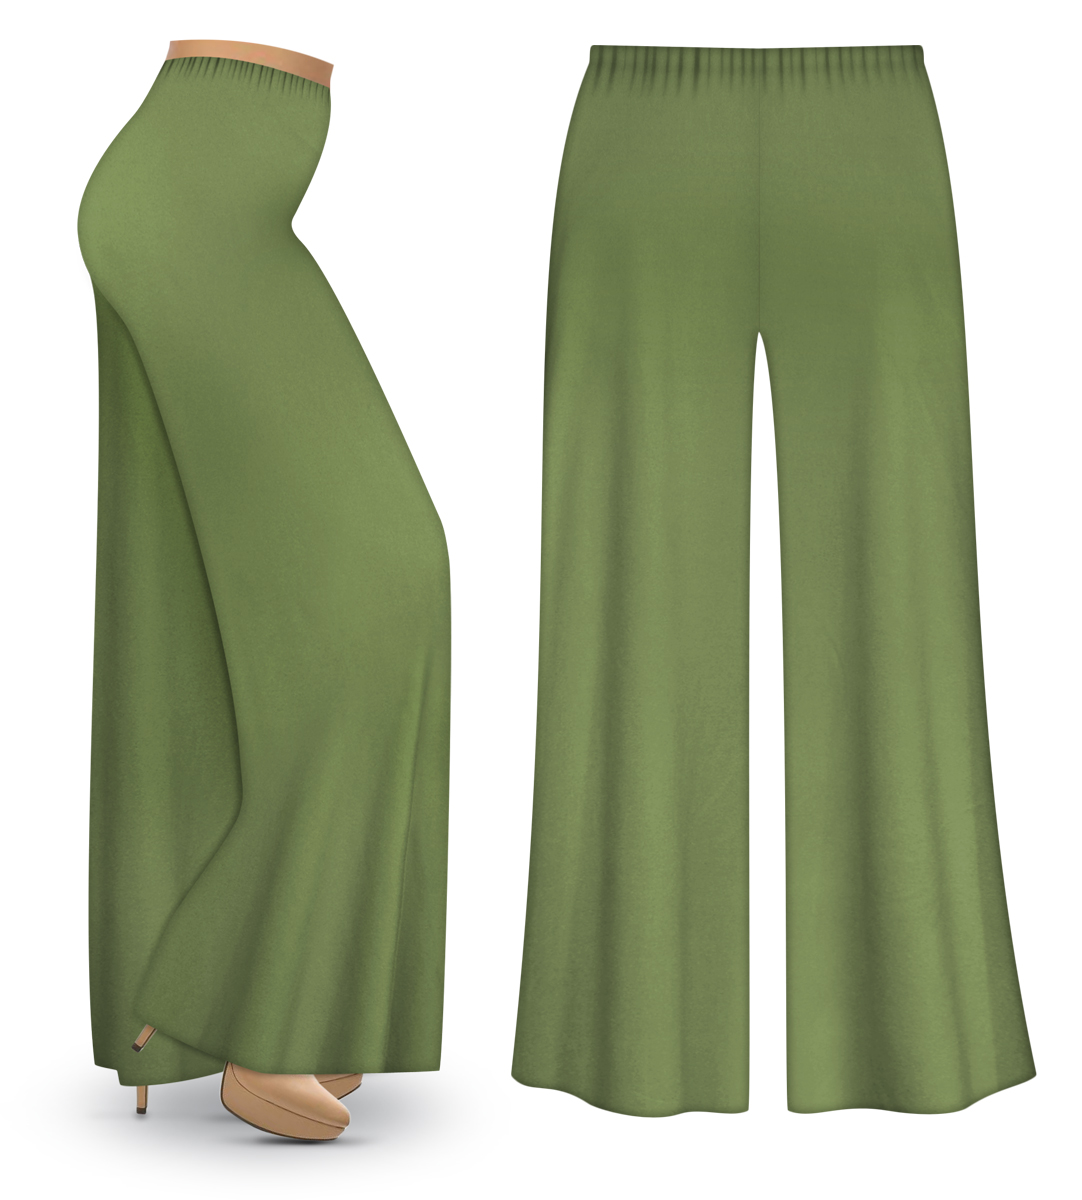 Sold Out Clearance Olive Green Wide Leg Palazzo Pants In Slinky